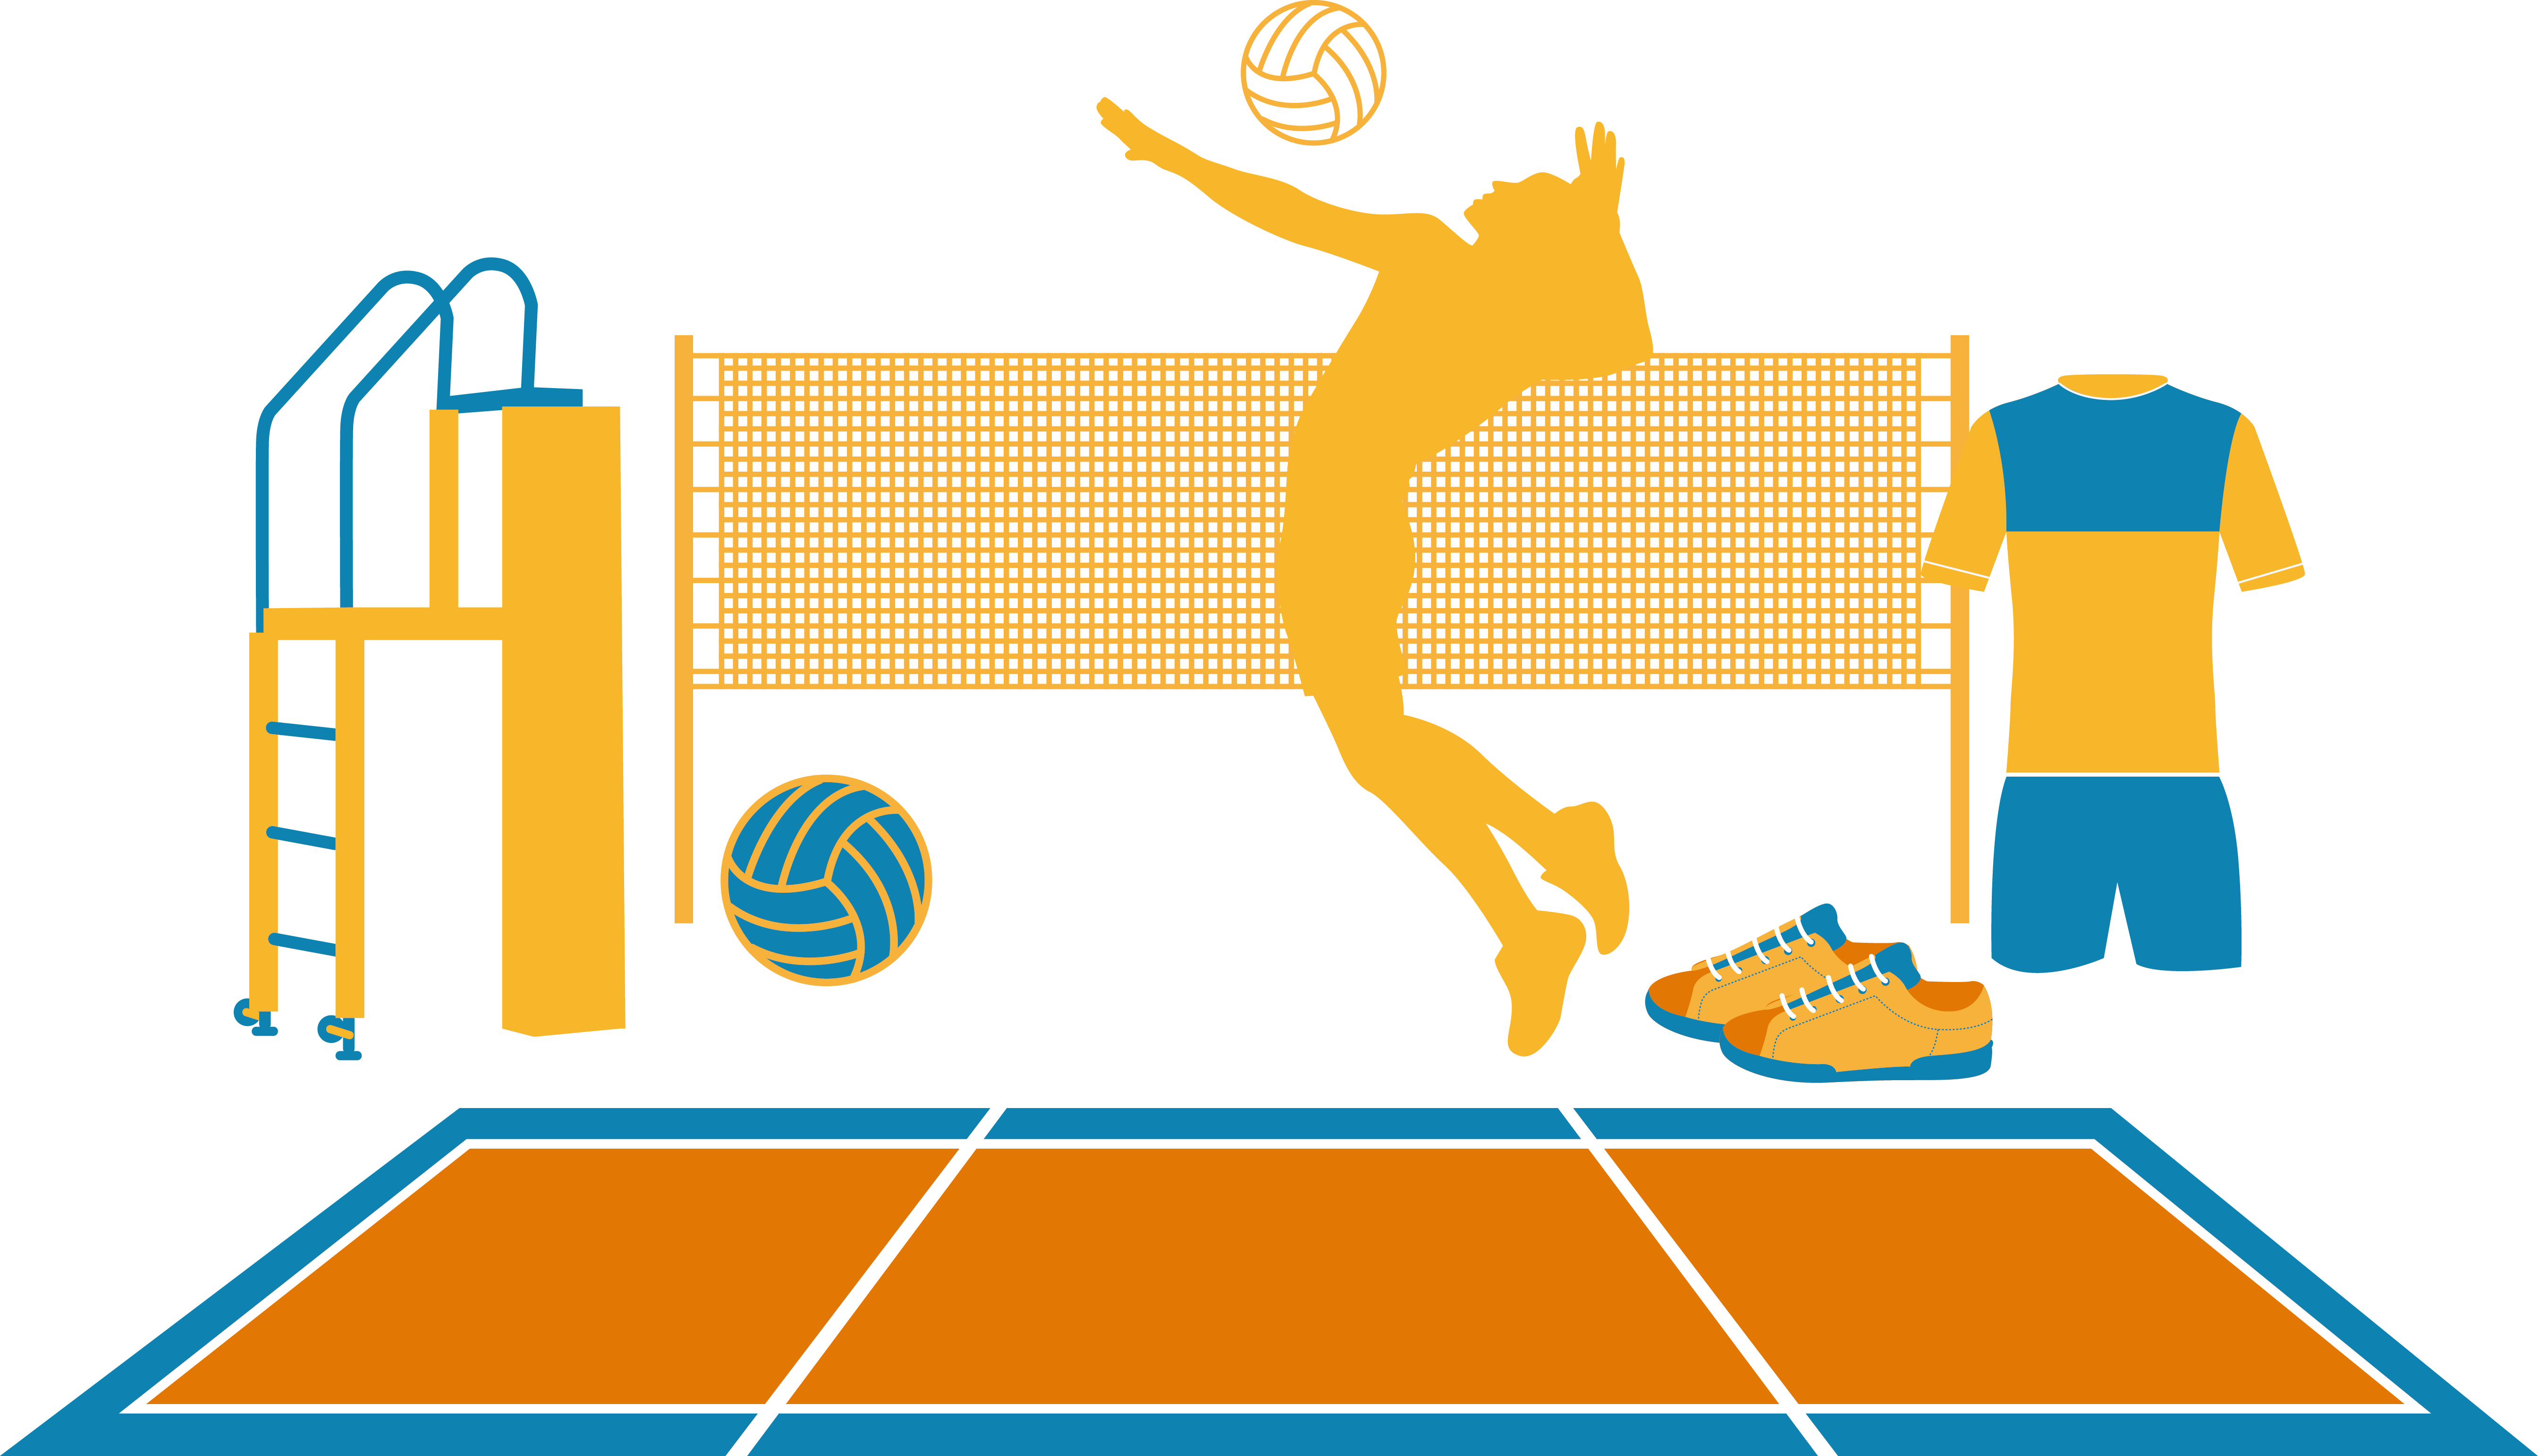 HD Volleyball Vecteur Euclidean Vector.